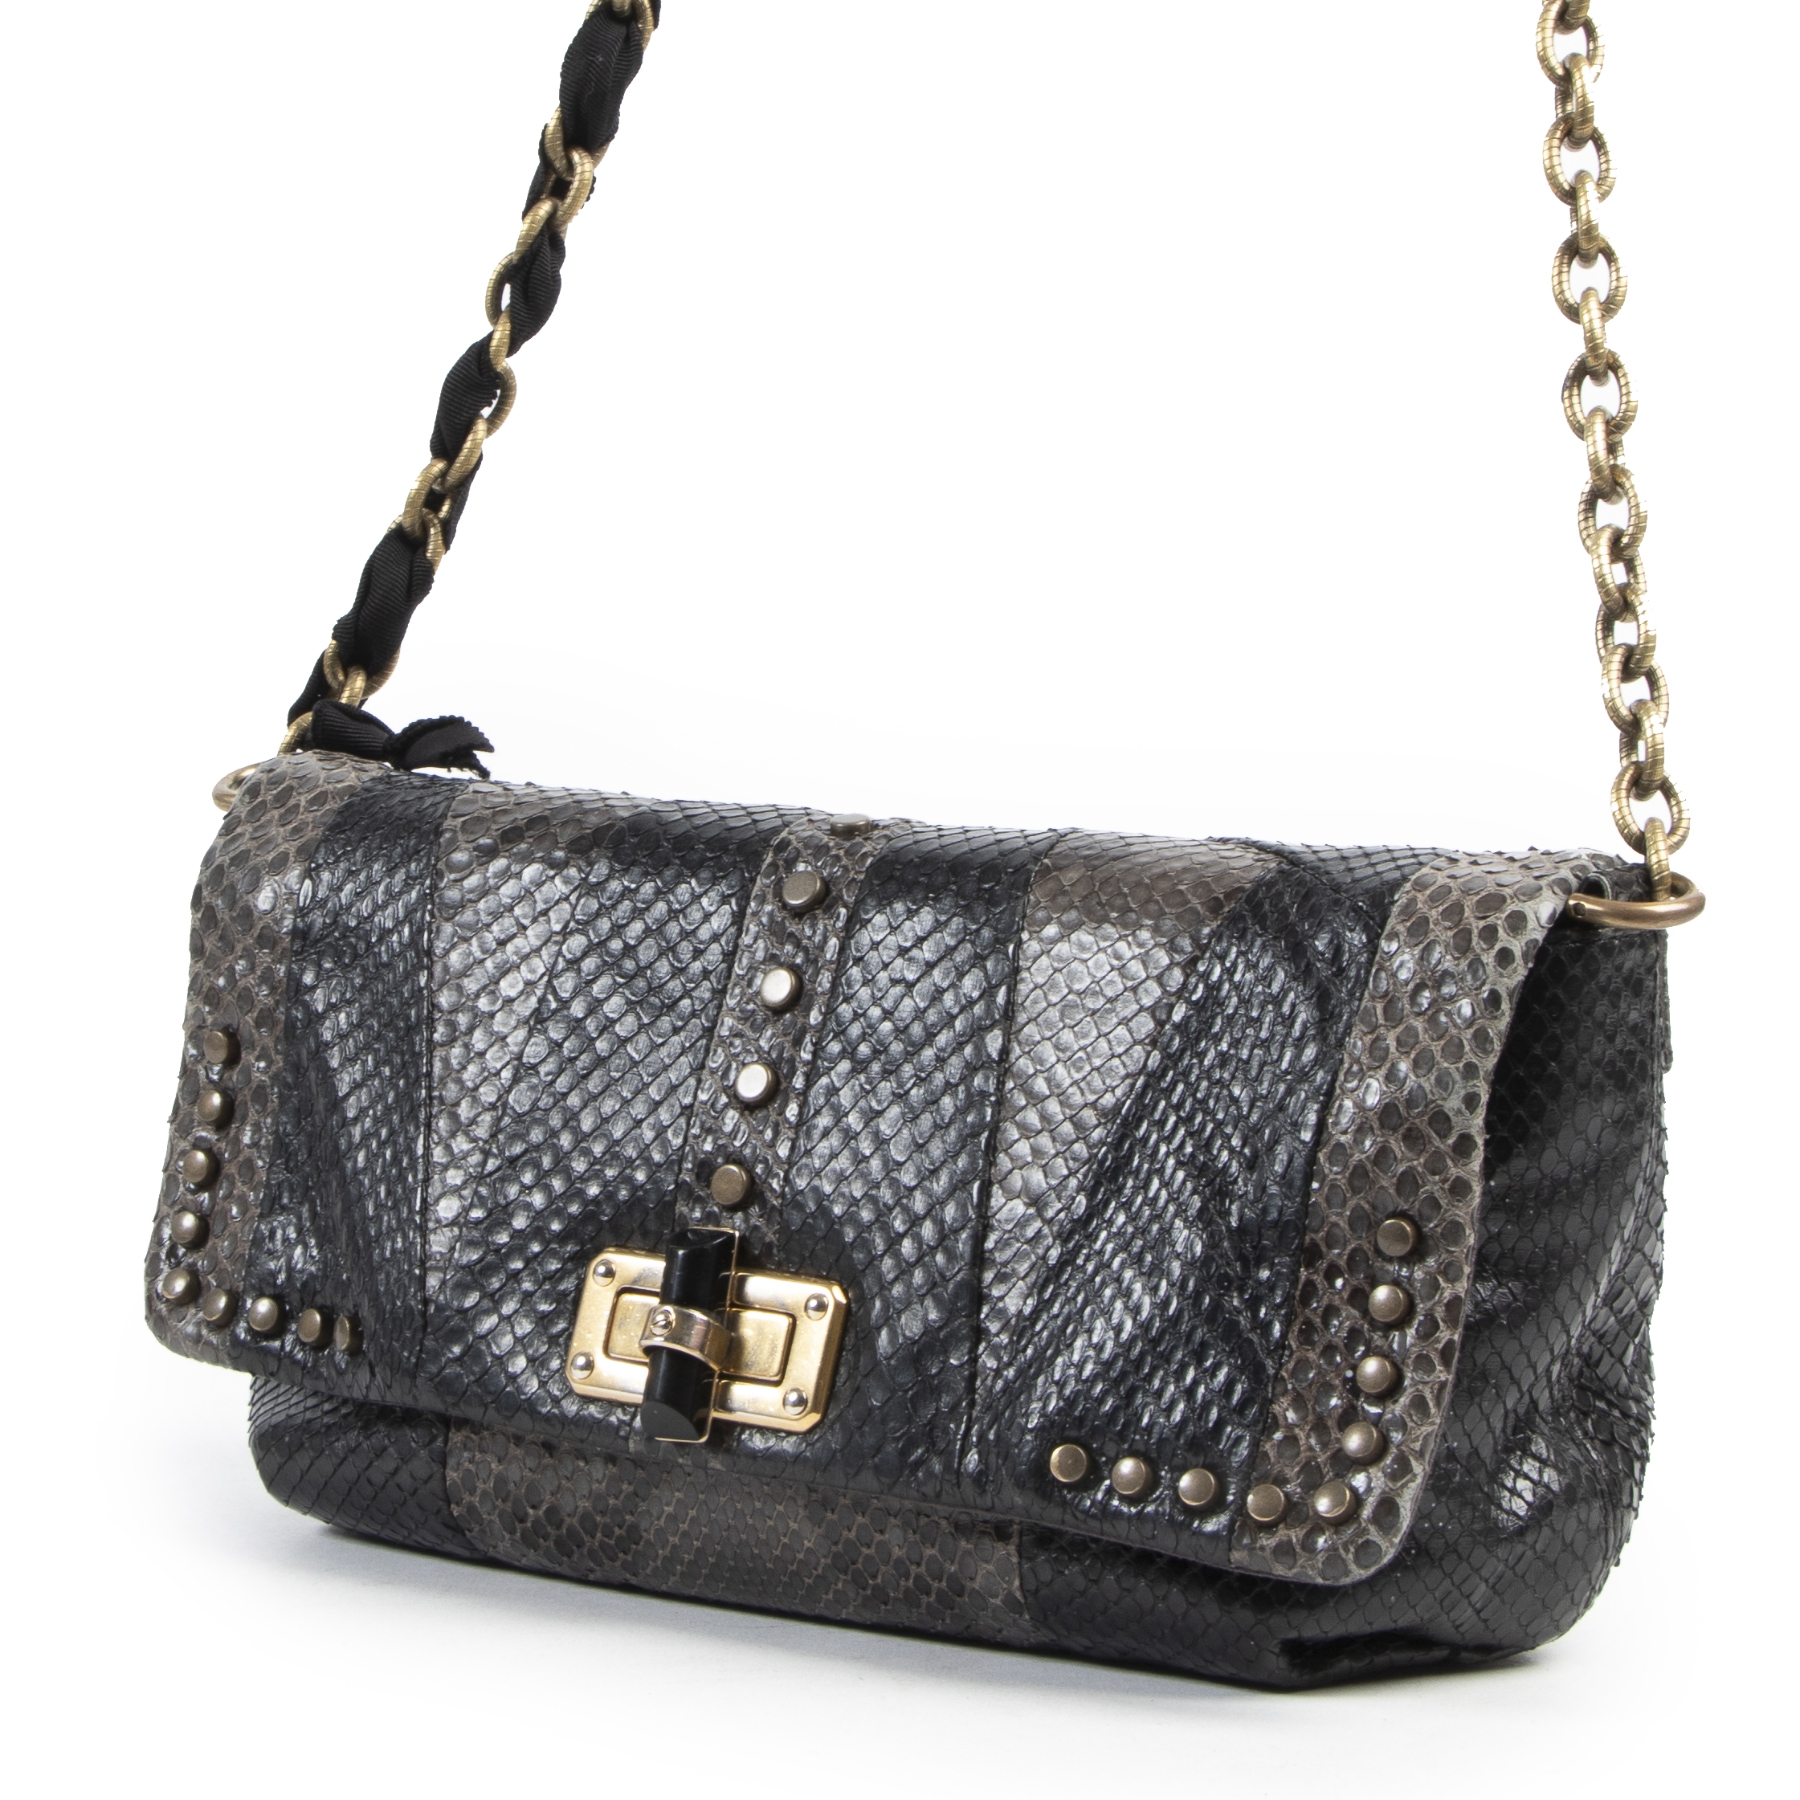 Lanvin Python Patchwork Happy Bag